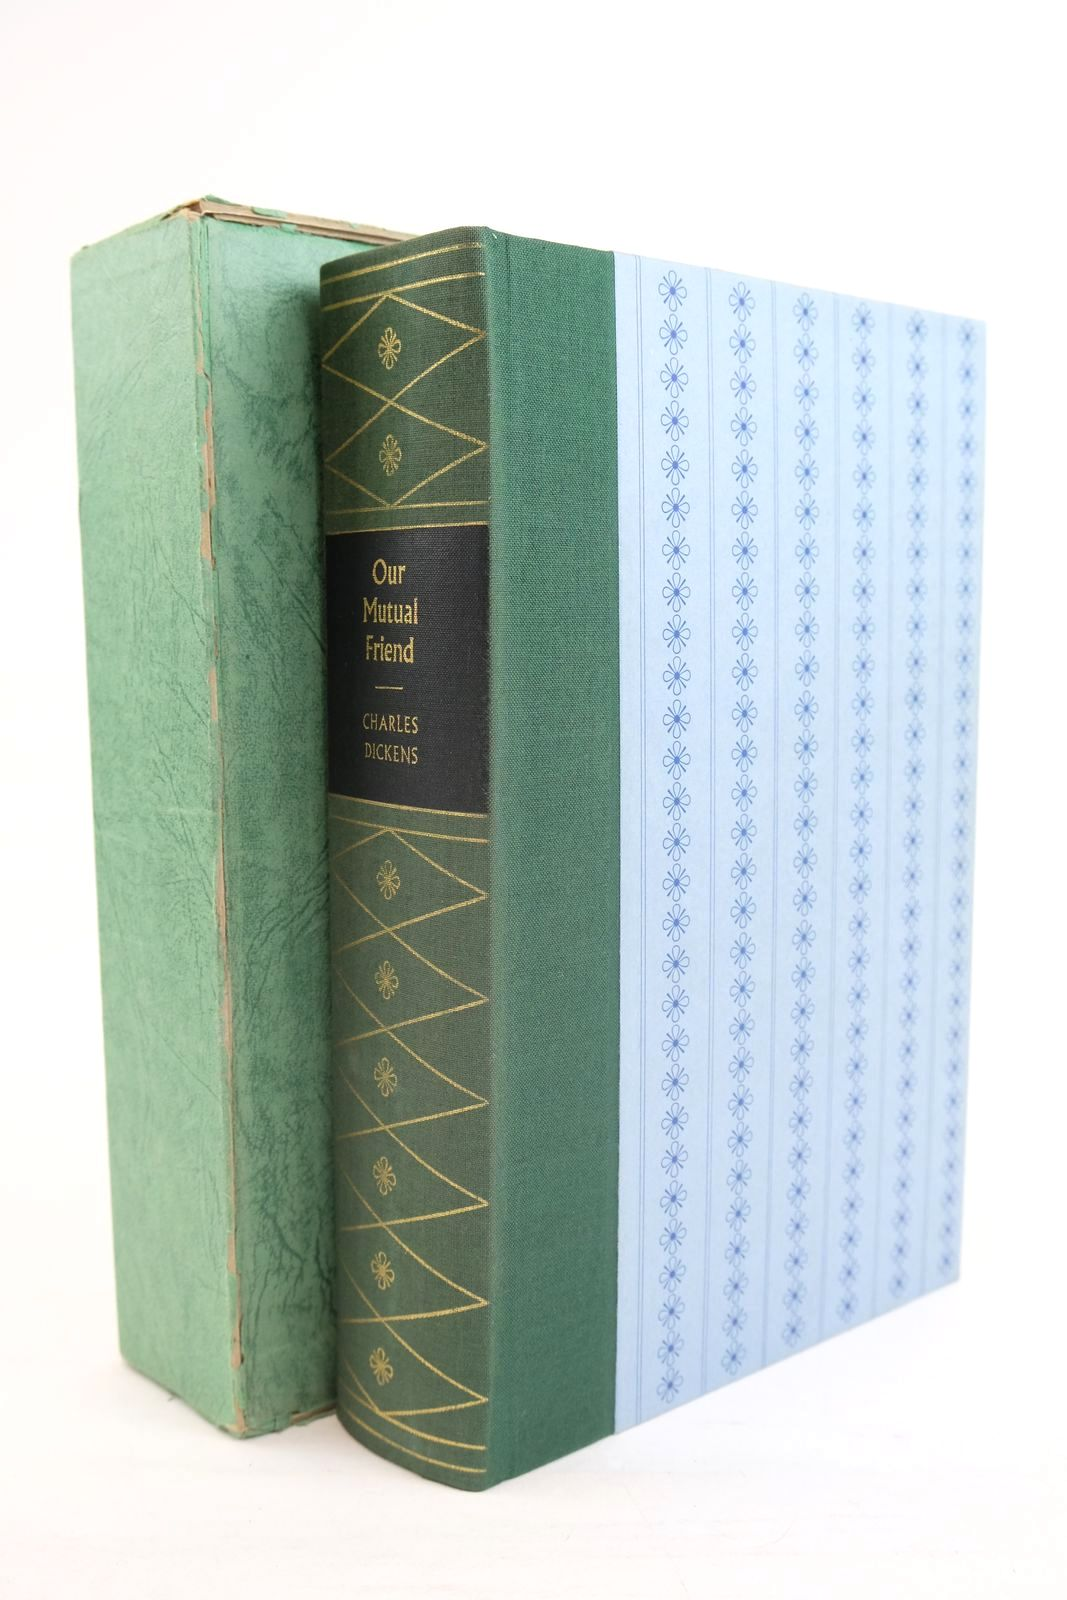 Photo of OUR MUTUAL FRIENDS written by Dickens, Charles illustrated by Keeping, Charles published by Folio Society (STOCK CODE: 1320029)  for sale by Stella & Rose's Books